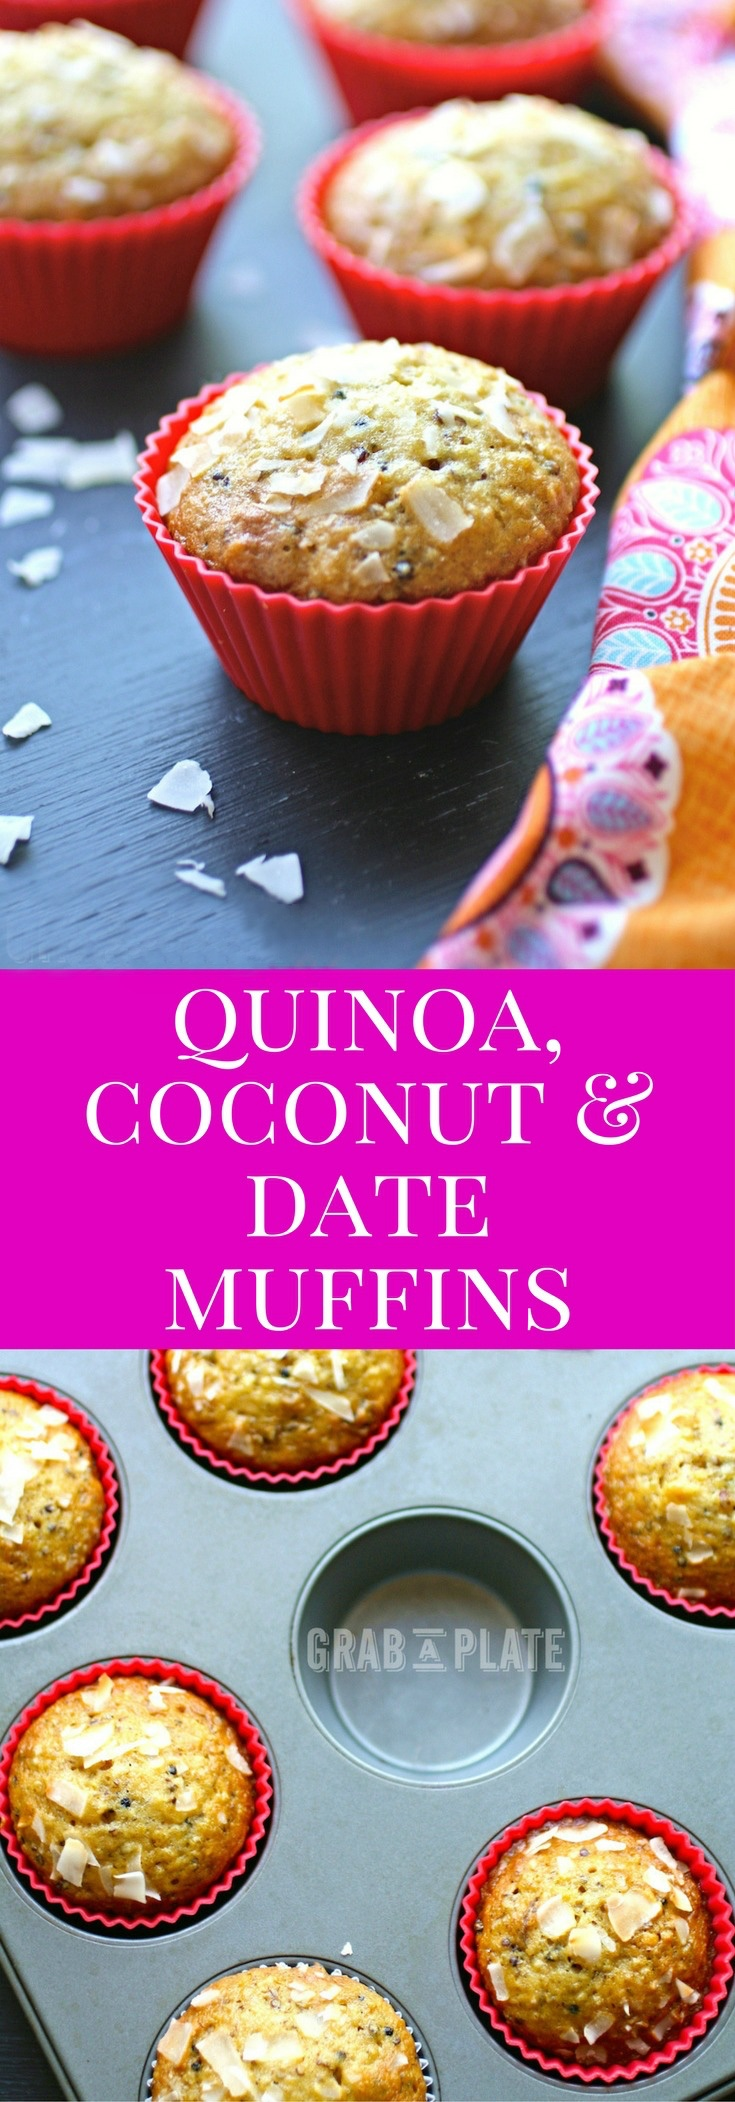 Quinoa, Coconut & Date Muffins are a tasty treat! Great for breakfast, or as a snack!